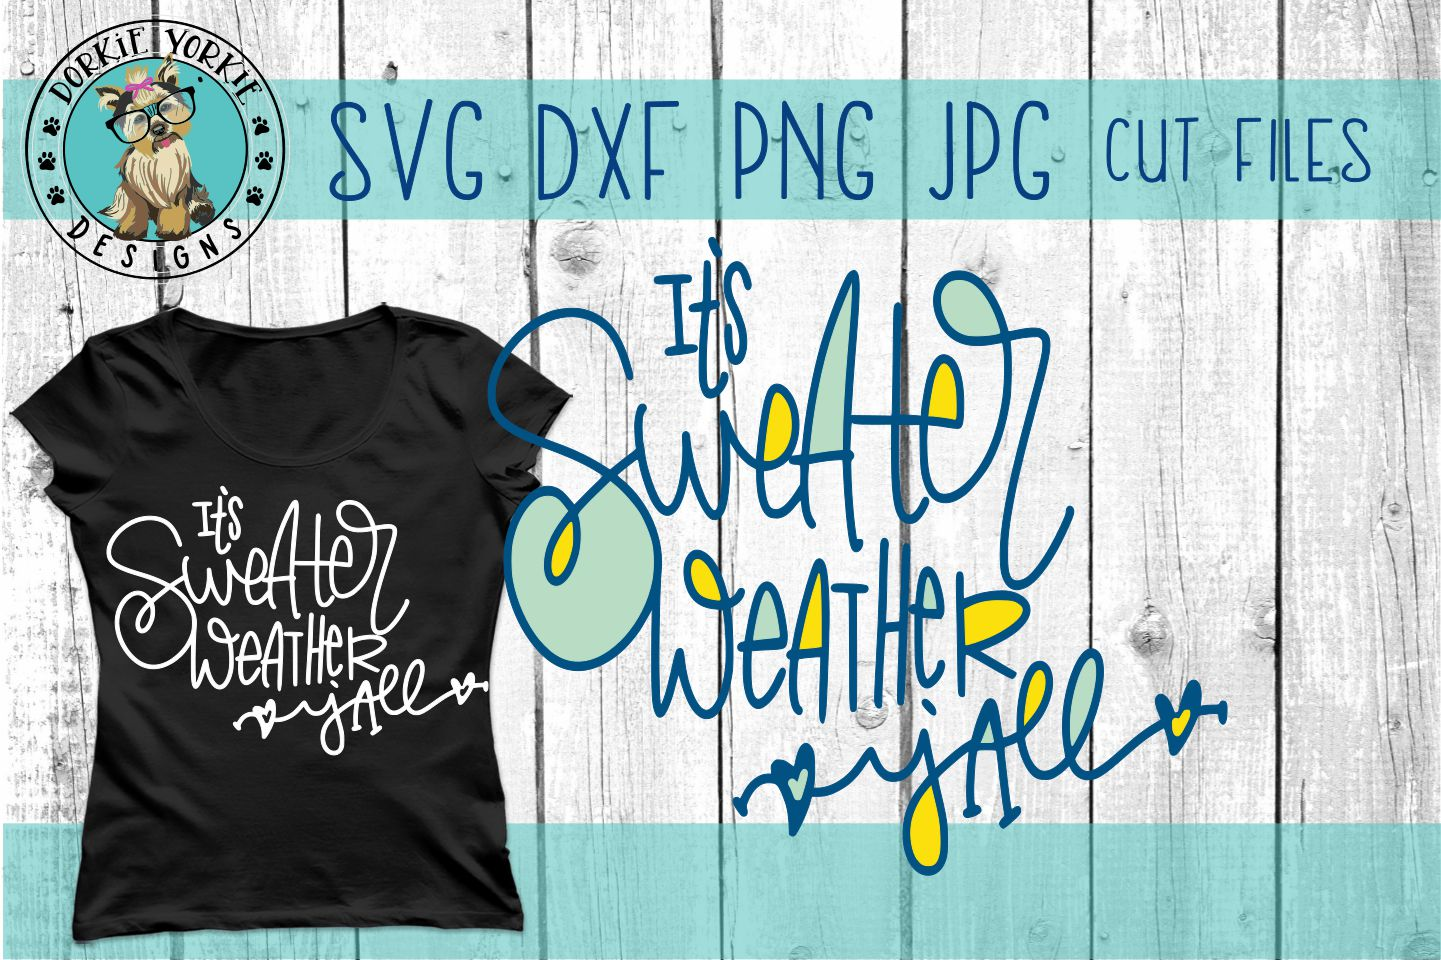 It's Sweater Weather Y'all Hand lettered - SVG Cut File example image 1